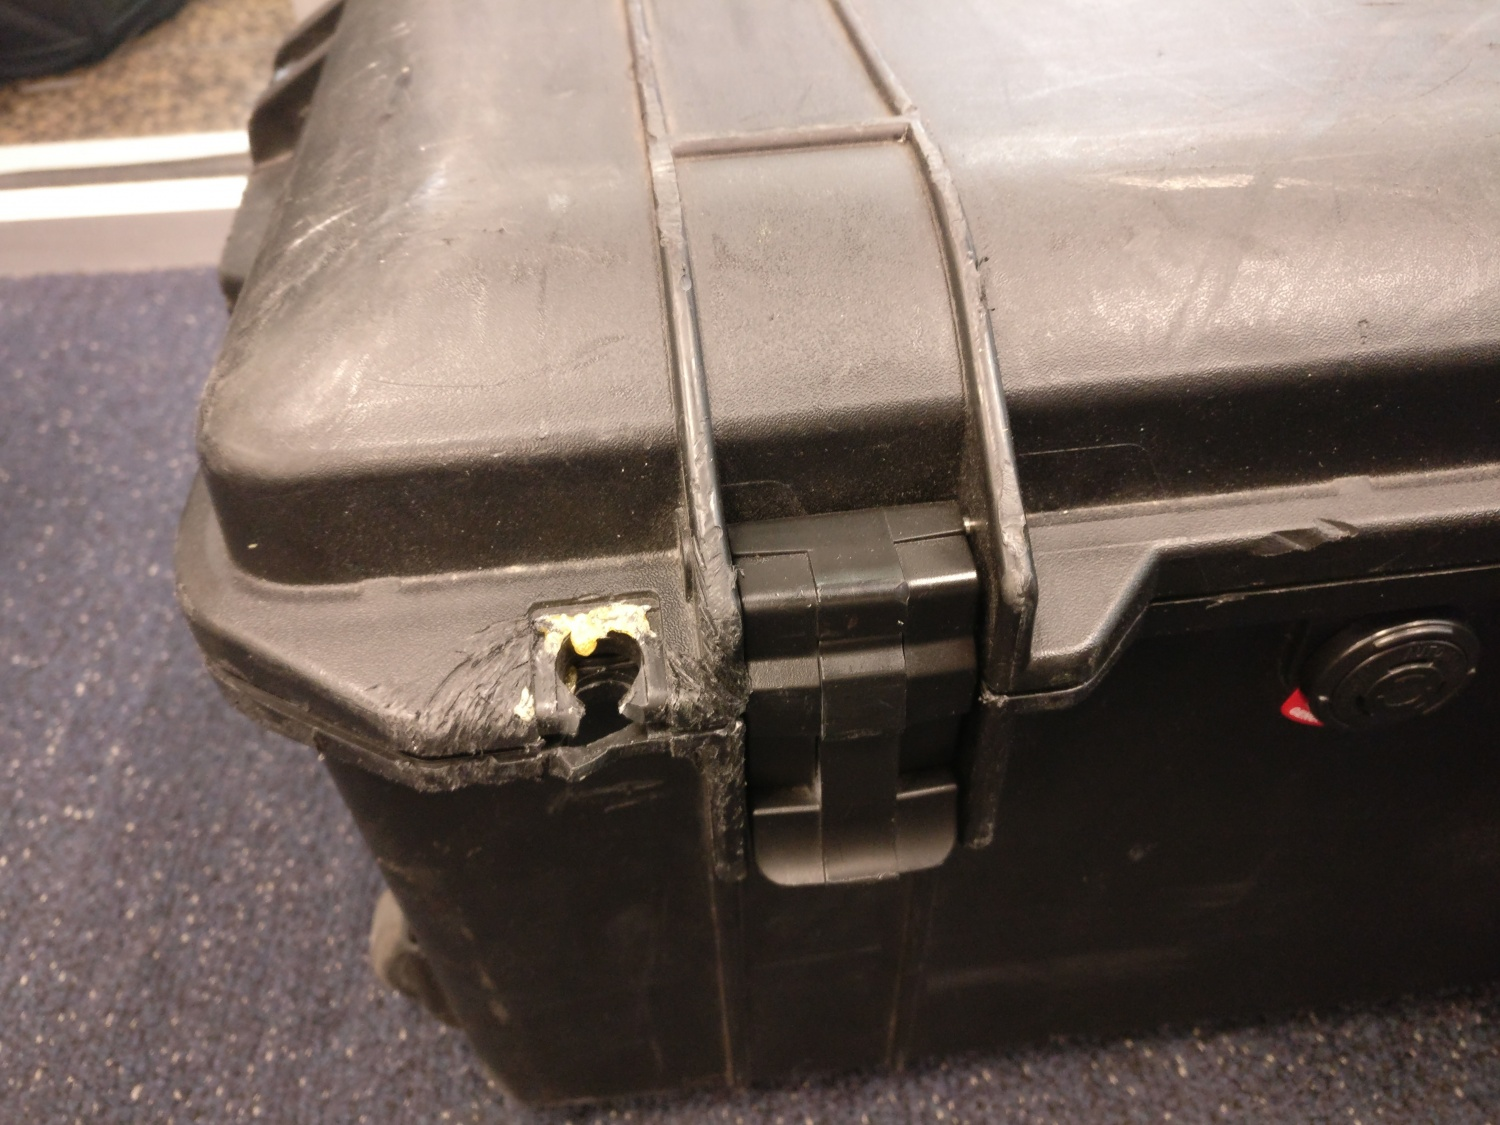 A broken hasp on one of the author's Pelican cases, which has been subject to repeated repair attempts.